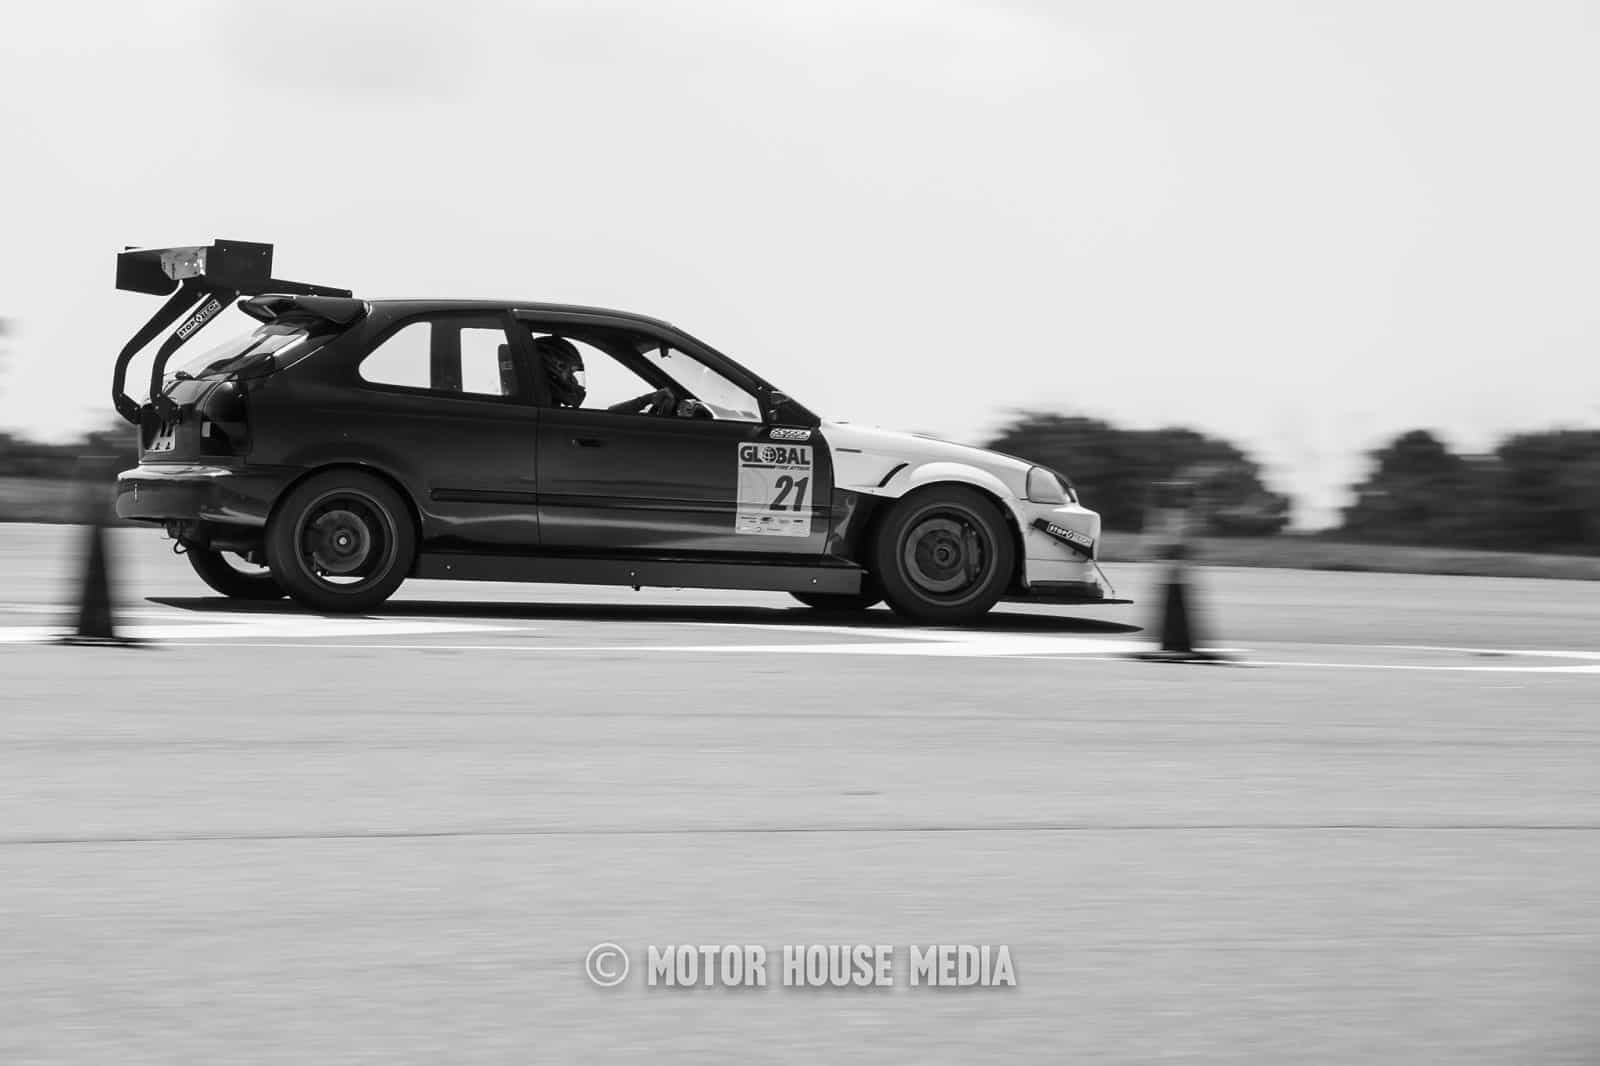 Global Time Attack car in black and white